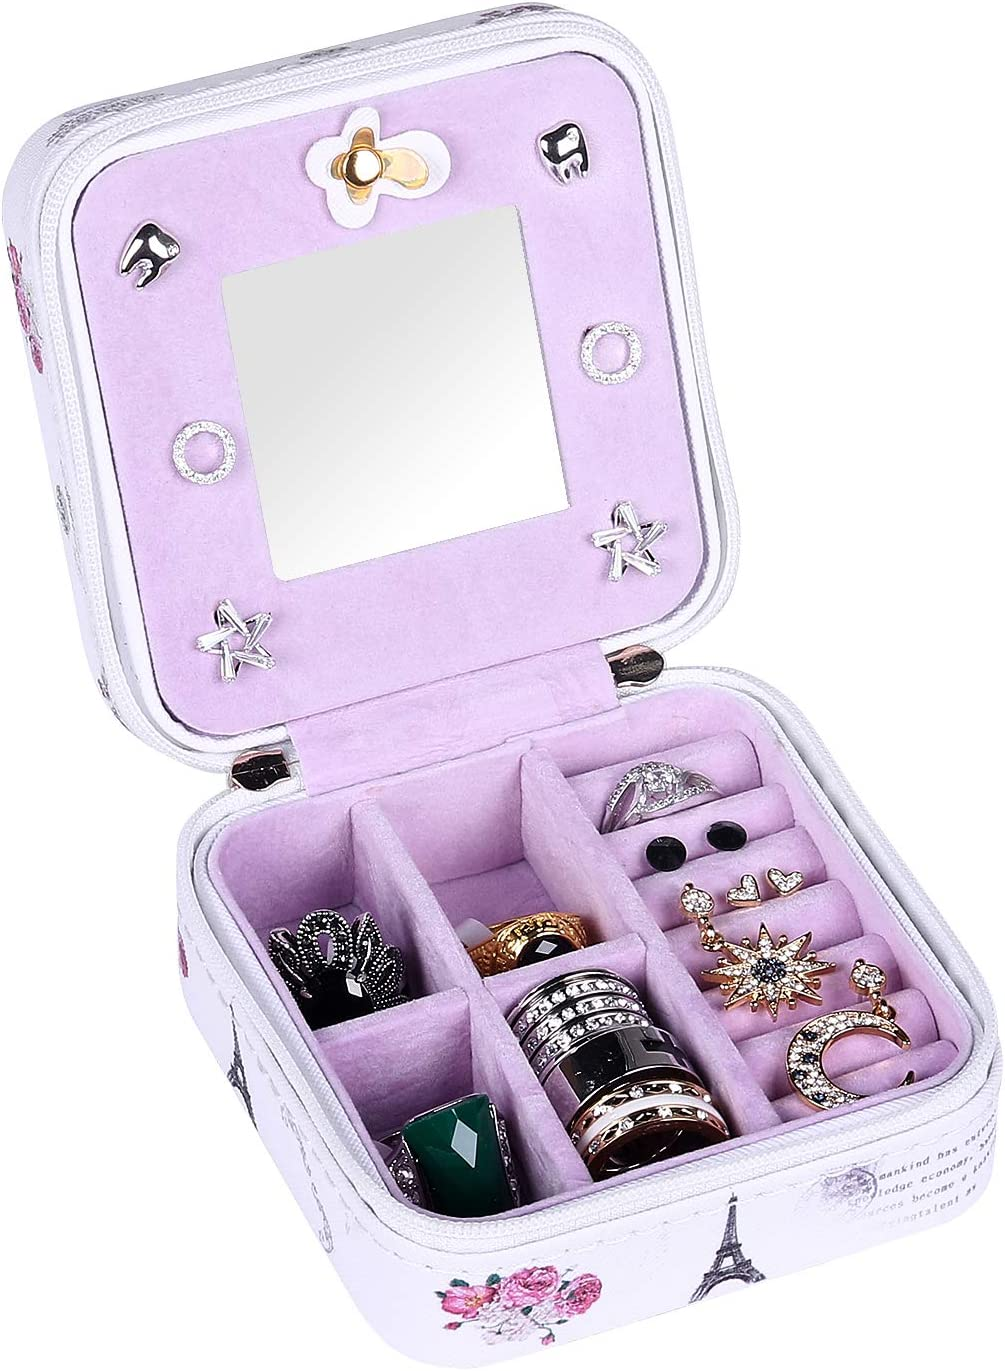 Jewelry Boxes Home Kitchen Pu Leather Leaning Eiffel Tower Jewelry Organizer Travel Storage Case For Rings Earrings With Mirror Portable Small Jewelry Box